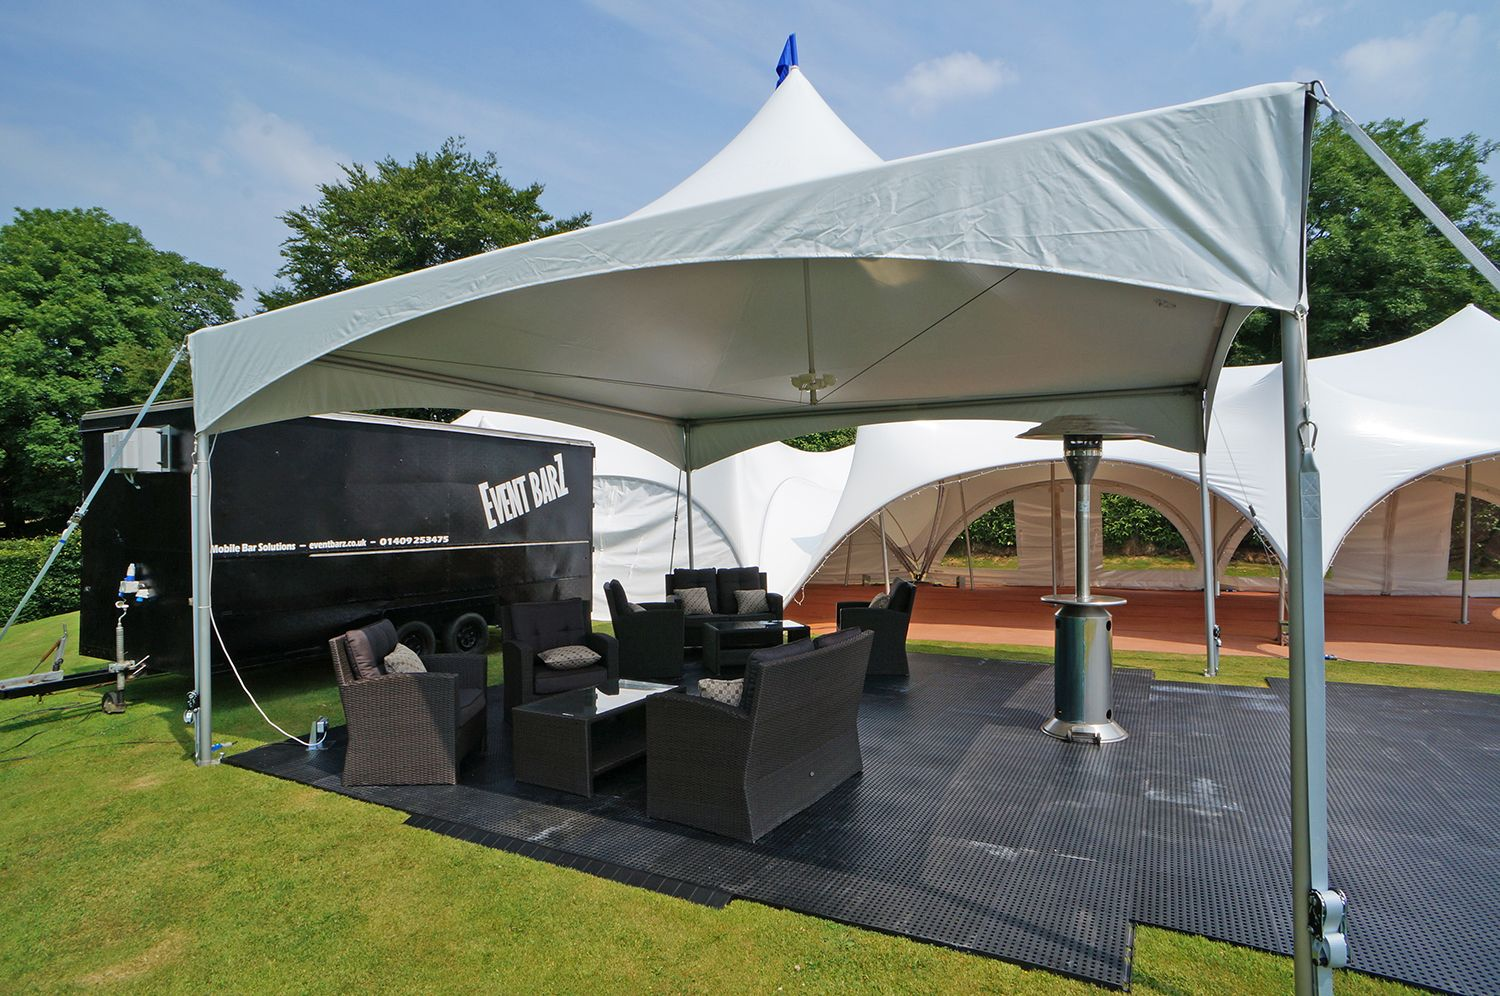 One Of Our Smaller 20x20ft Matrix Marquees Being Used For A Chill Out Area By The Bar On Display Are Th Rattan Furniture Set Interlocking Flooring Tent Design